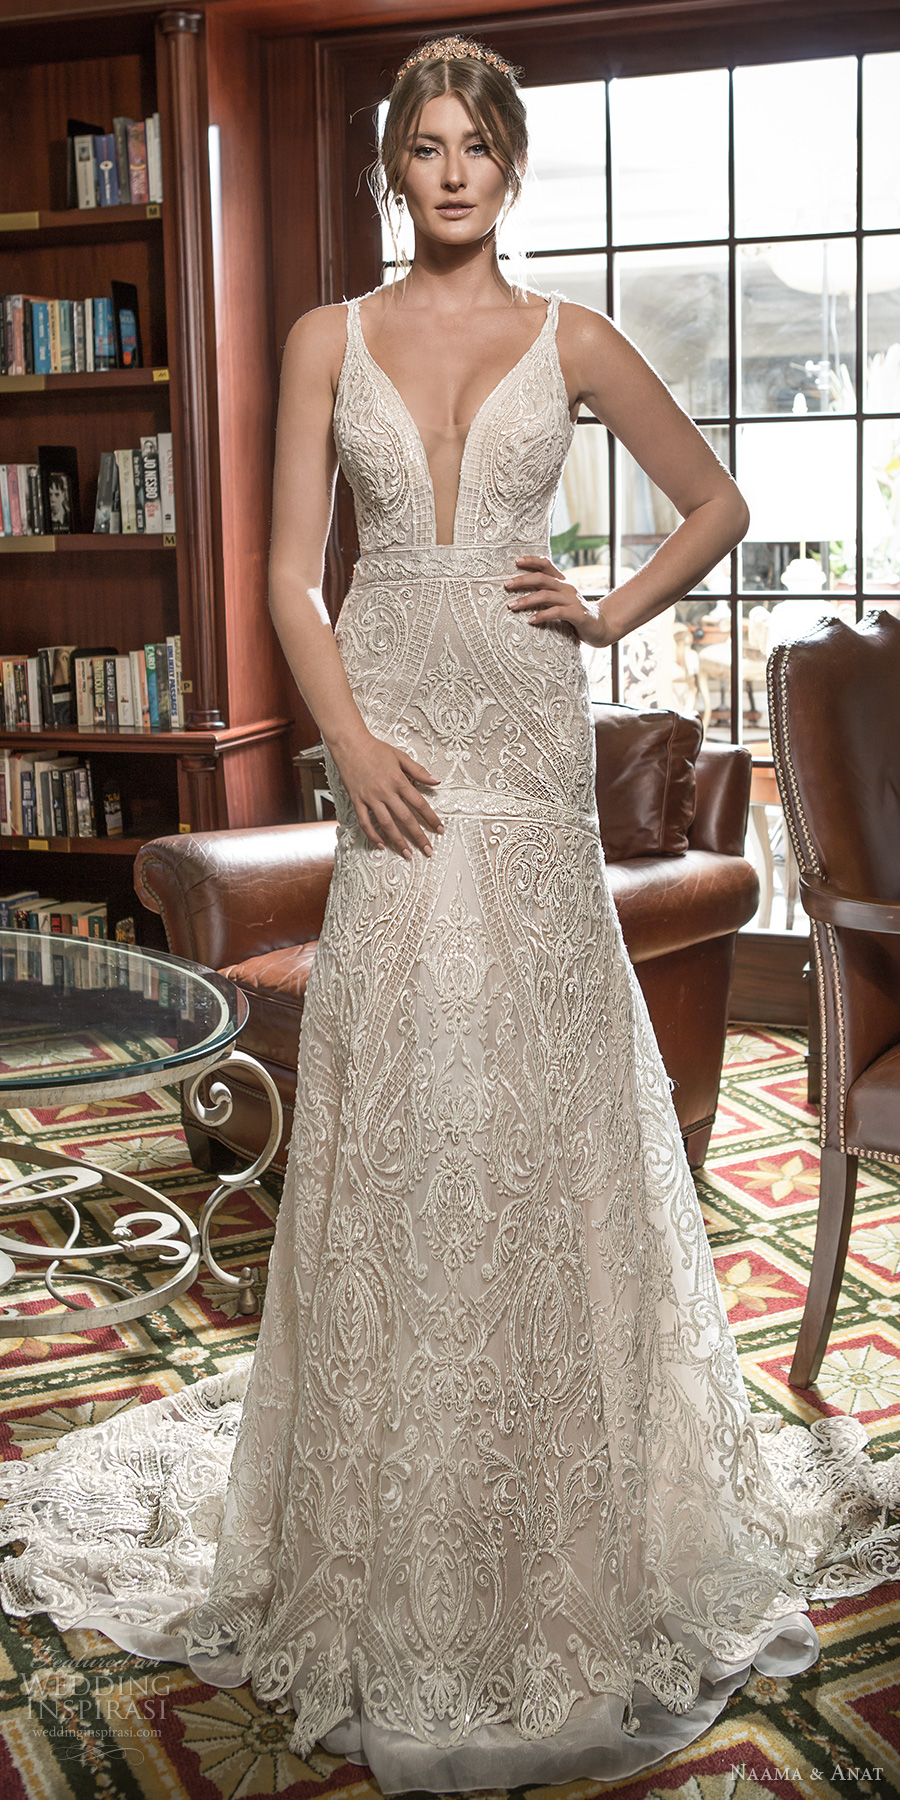 naama and anat 2018 bridal sleeveless deep plunging v neck full embellishment elegant drop waist modified a  line wedding dress open low back short train (aurora) mv